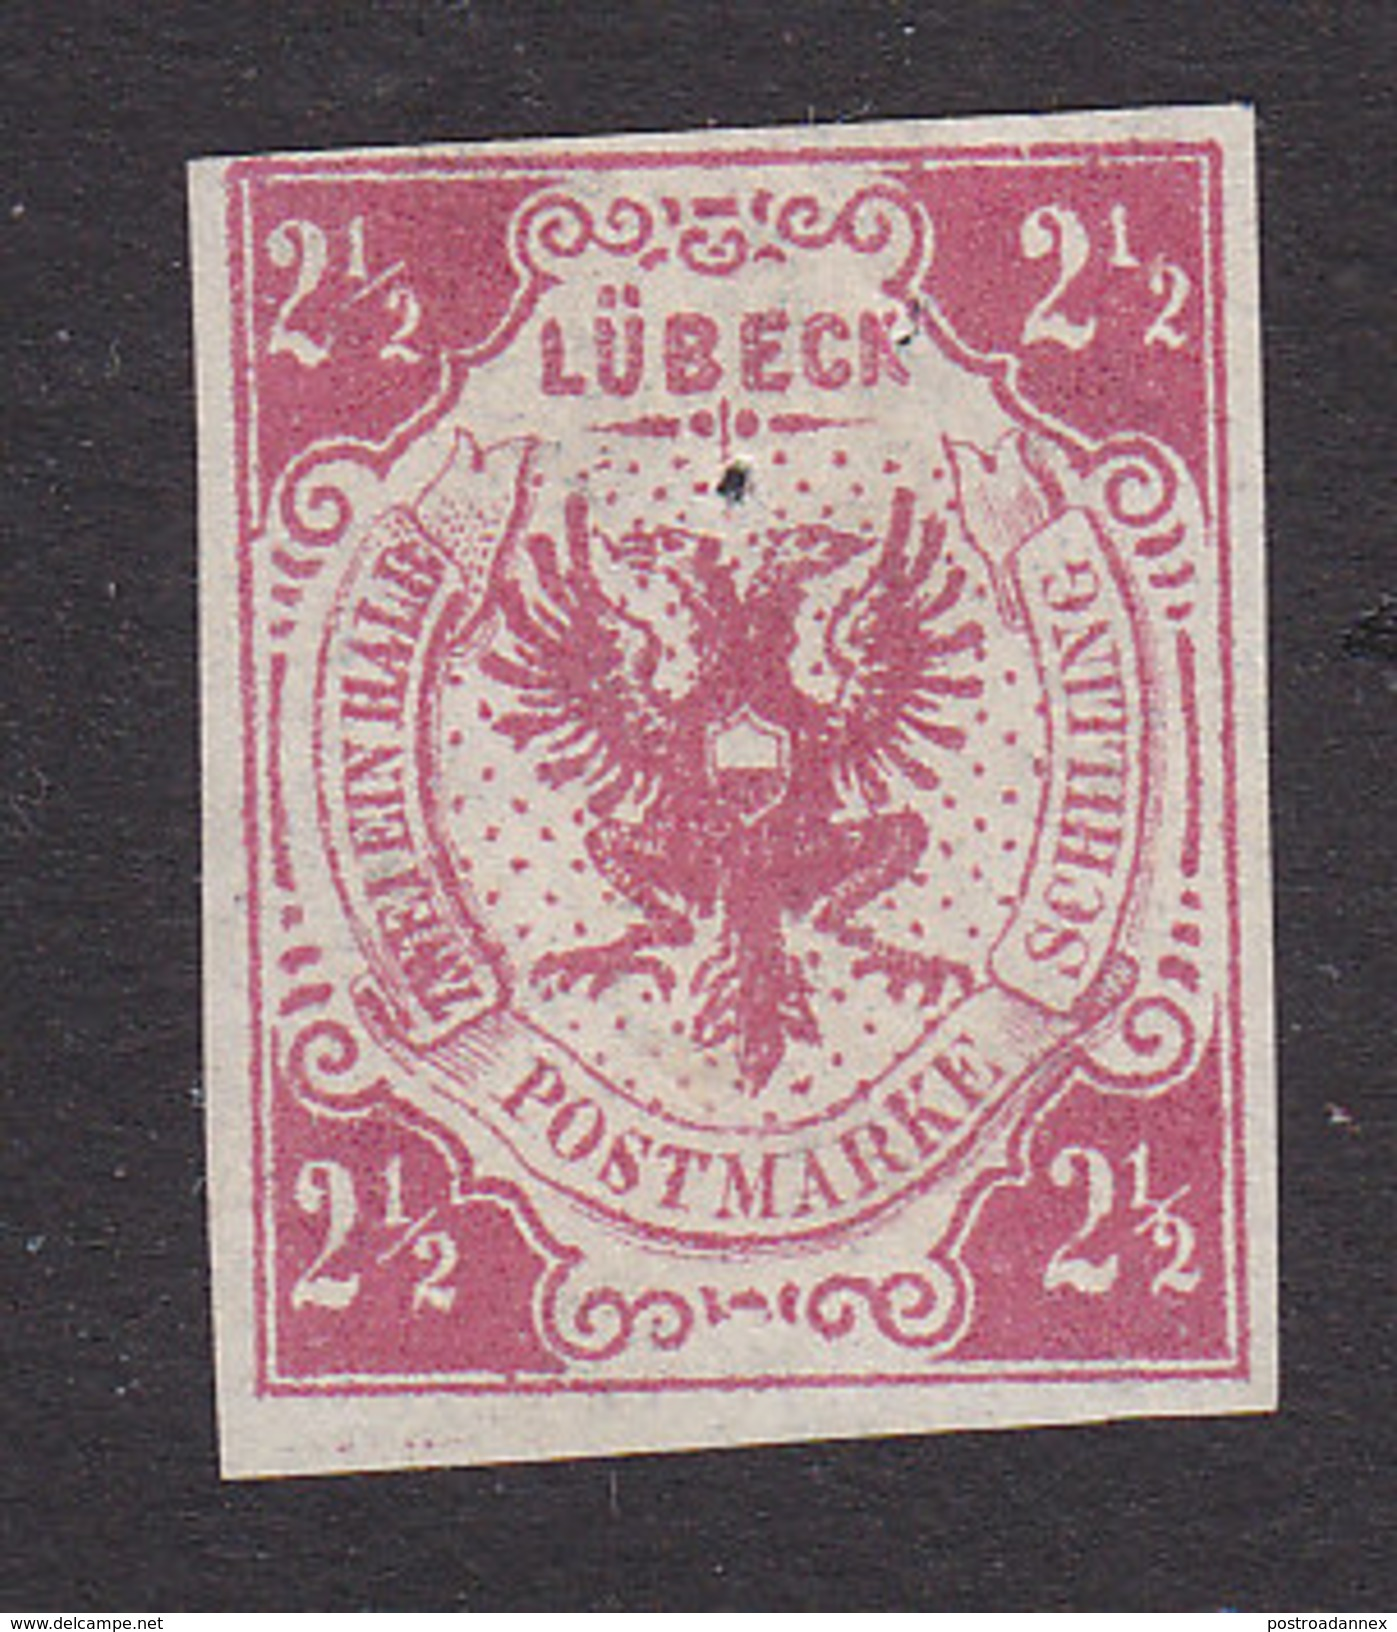 Lubeck, Scott #4, Mint No Gum, Coat Of Arms, Issued 1859 - Lubeck